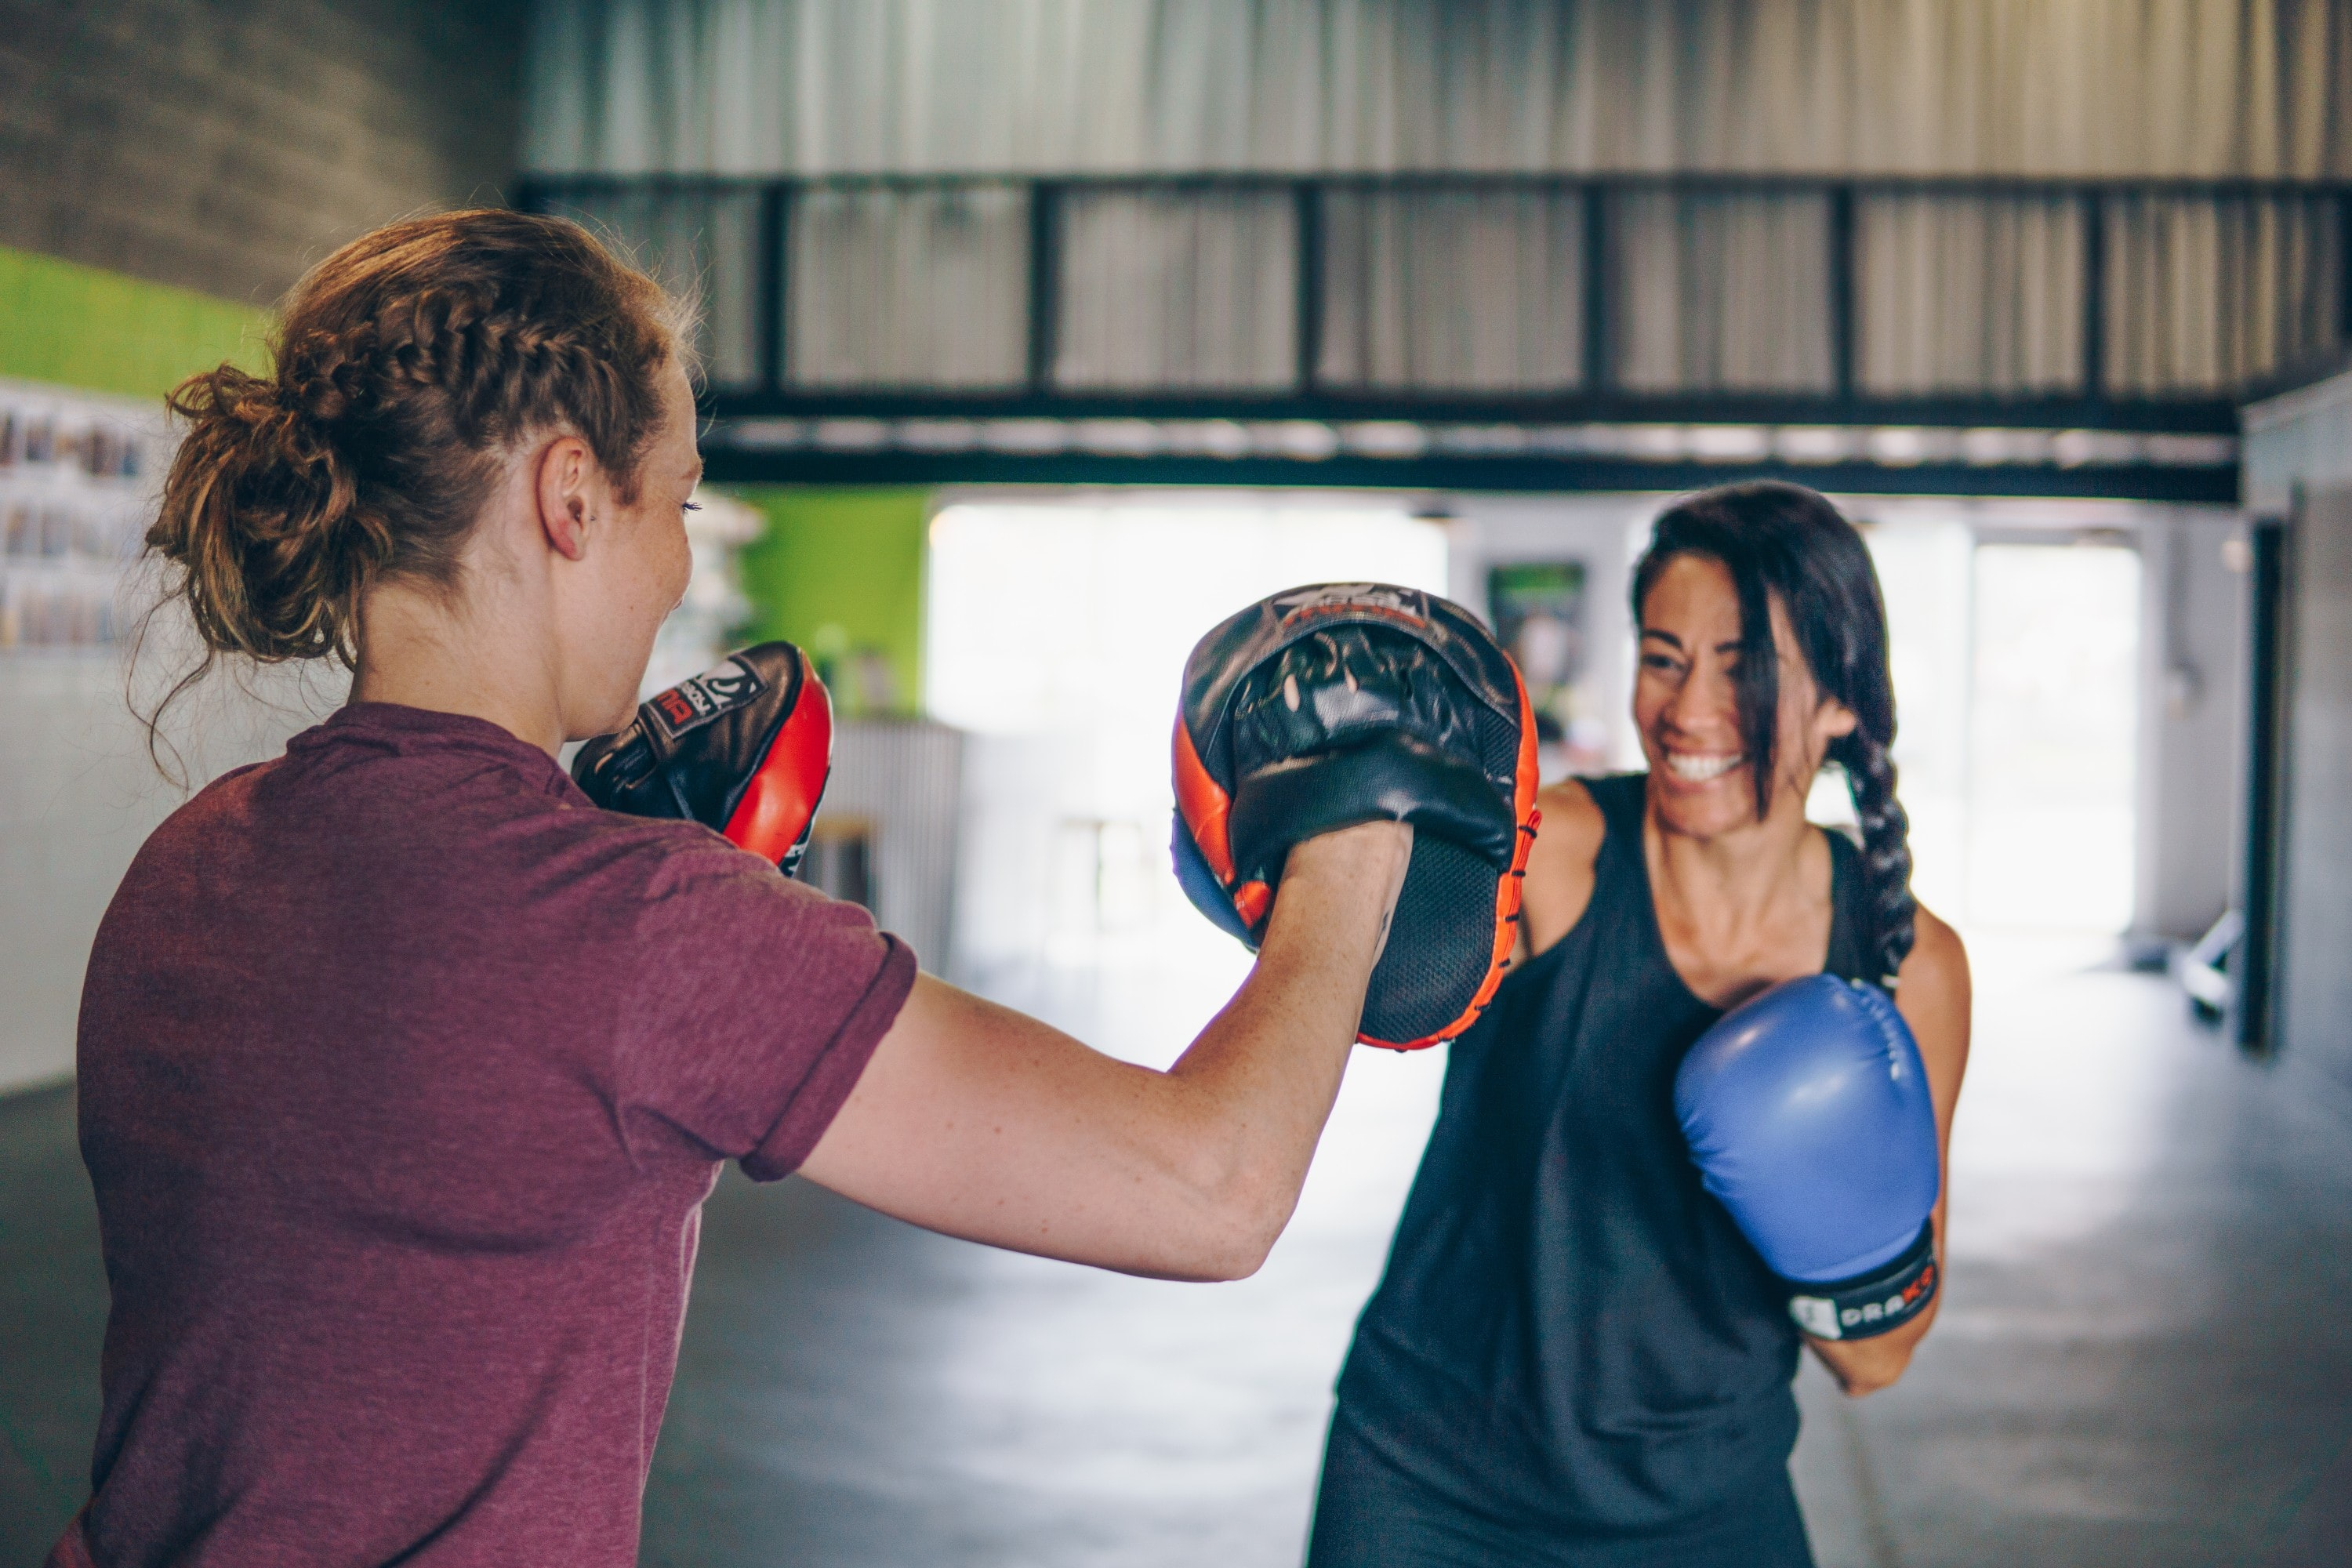 Comment:  Fighting back against the art of boxing